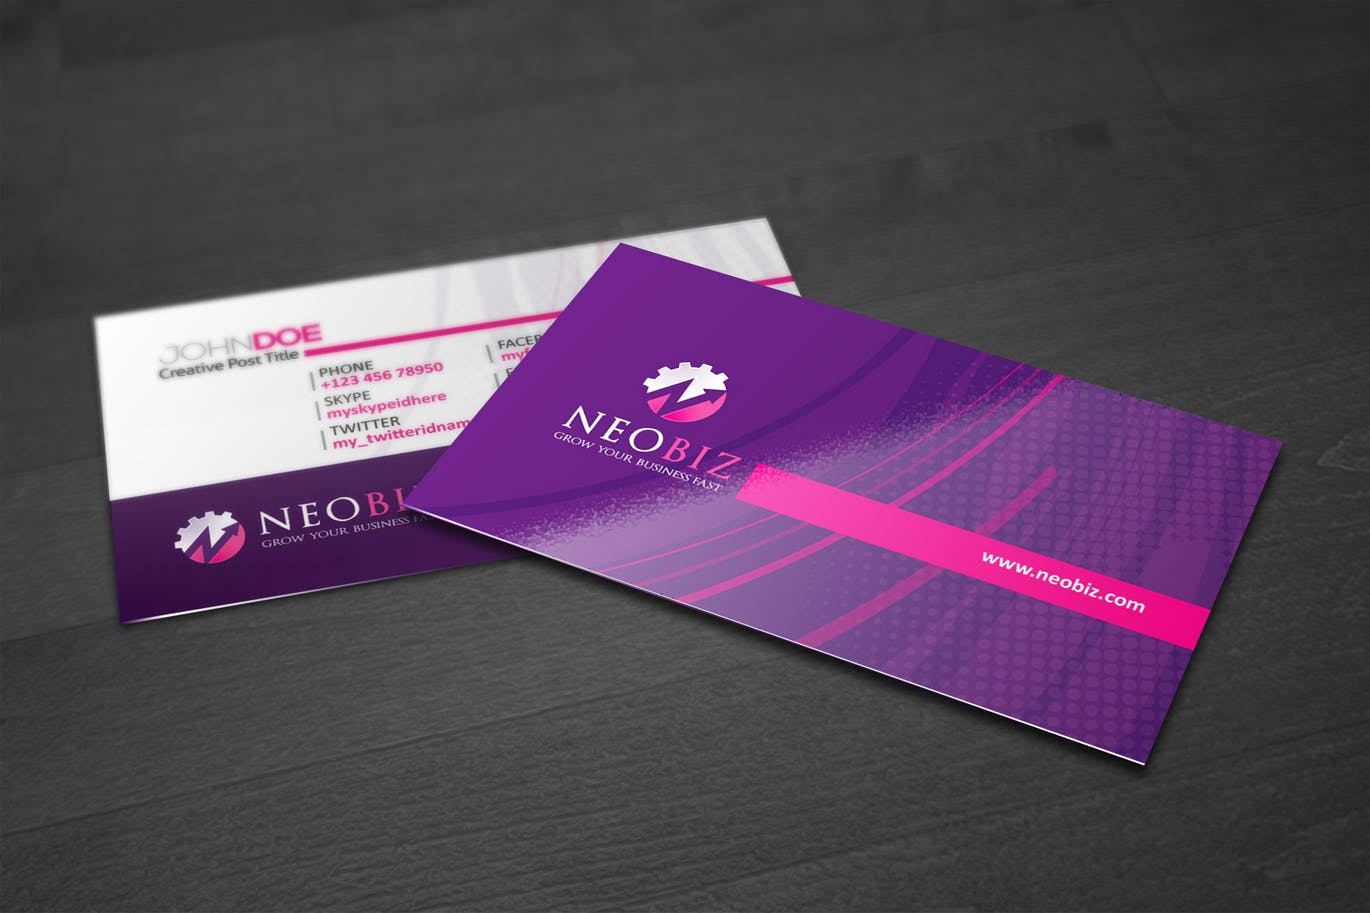 Gloss Laminated Business Cards | Printing Brooklyn | Printing in NYC